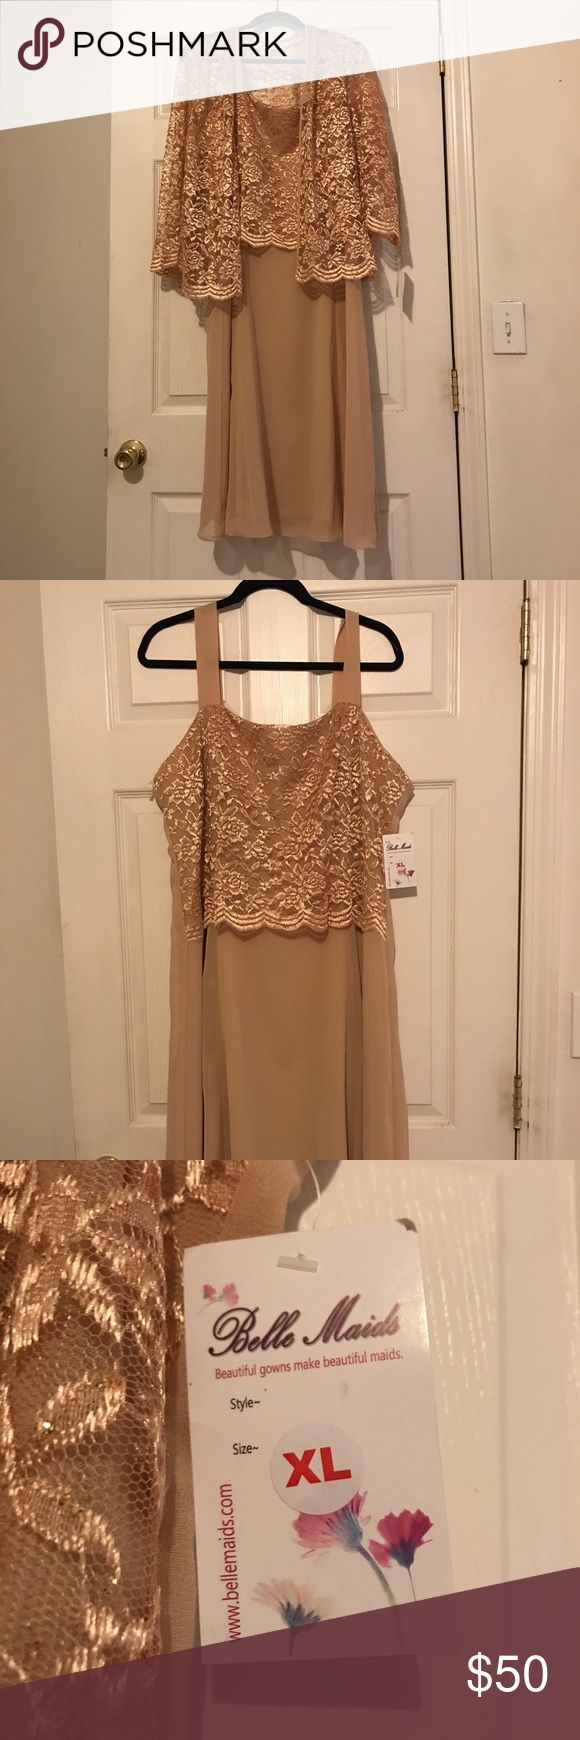 Holiday Party, Mother of the bride, Bridesmaid Gold sparkle lace top sleeveless dress with removable sleeve shawl/coat as seen in photo. Length is below the knee. Never been worn, tags are still attached. Could be worn to a holiday party or for a wedding as a bridesmaid dress or mother of the bride. Lace top and polyester bottom. Sally Dresses Midi